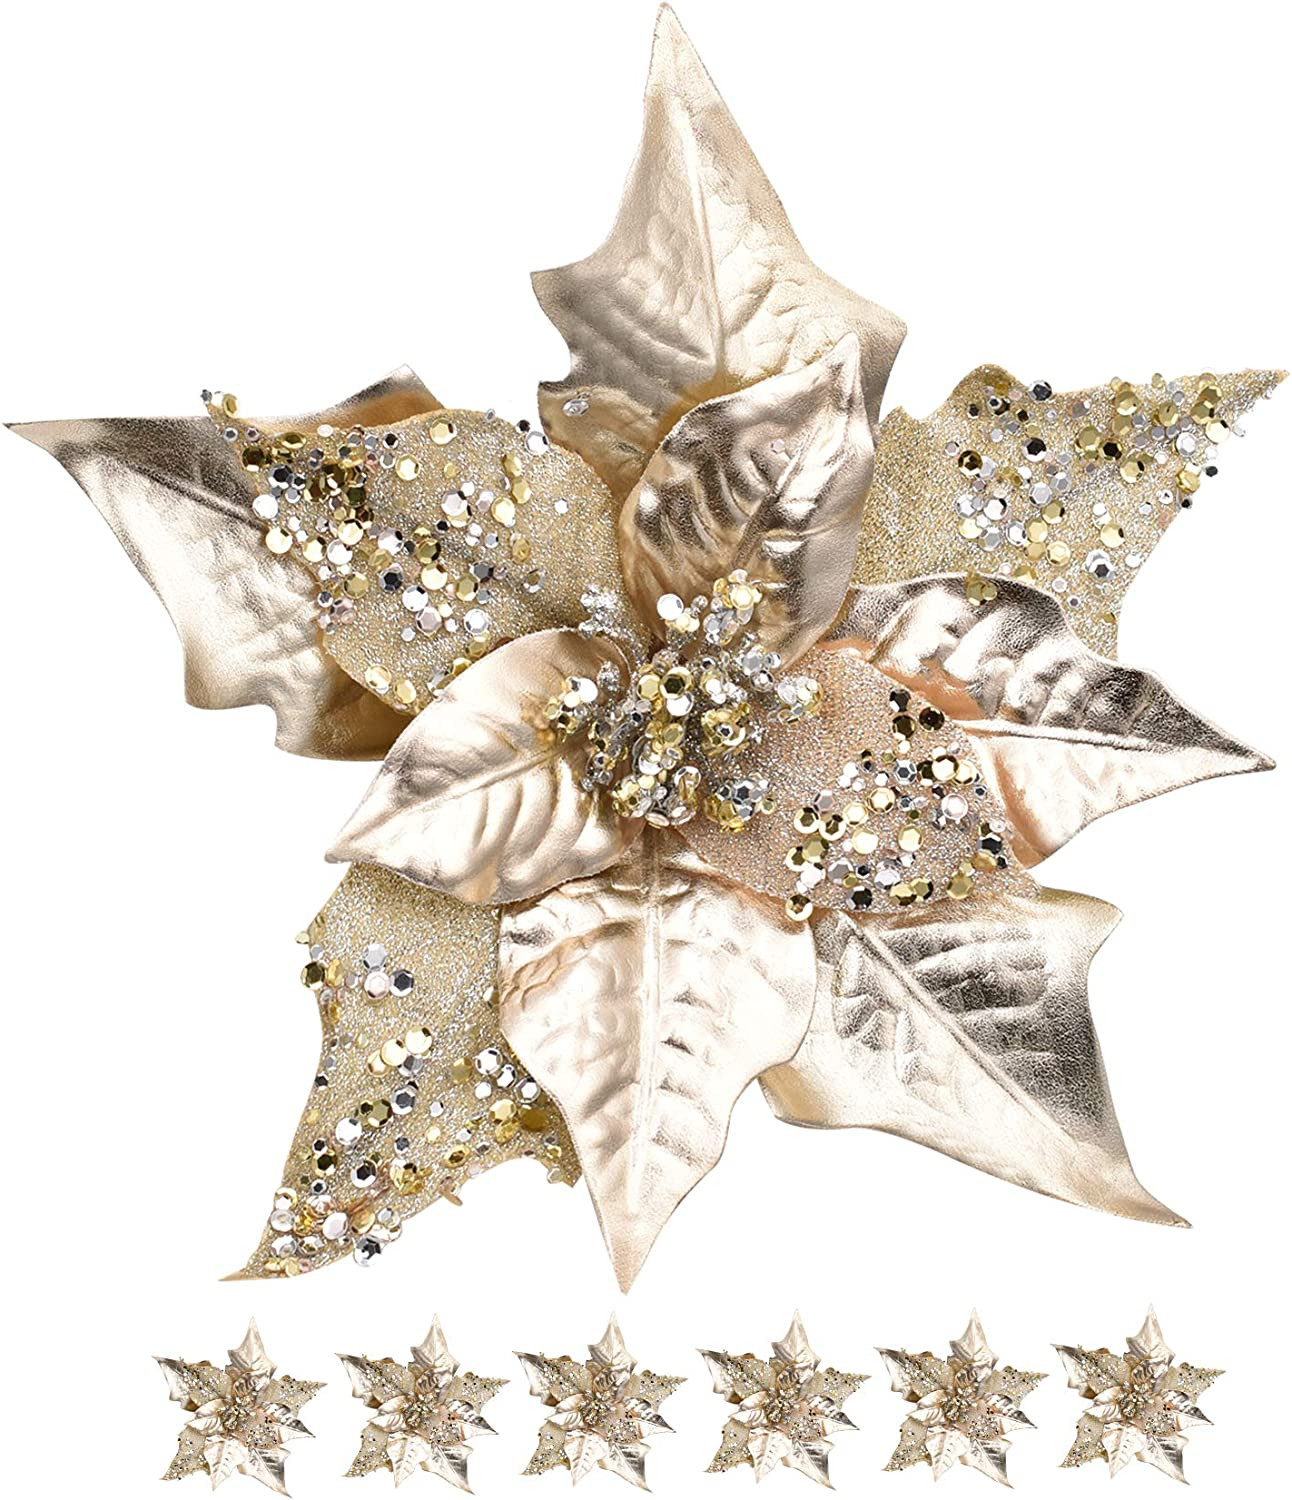 RED DECO 6pcs Artificial Christmas Poinsettias Flowers for Decoration, Glitter Flower Christmas Tree Ornaments Wedding Holiday Wreath Garland Decor with Clip(Champagne Gold)